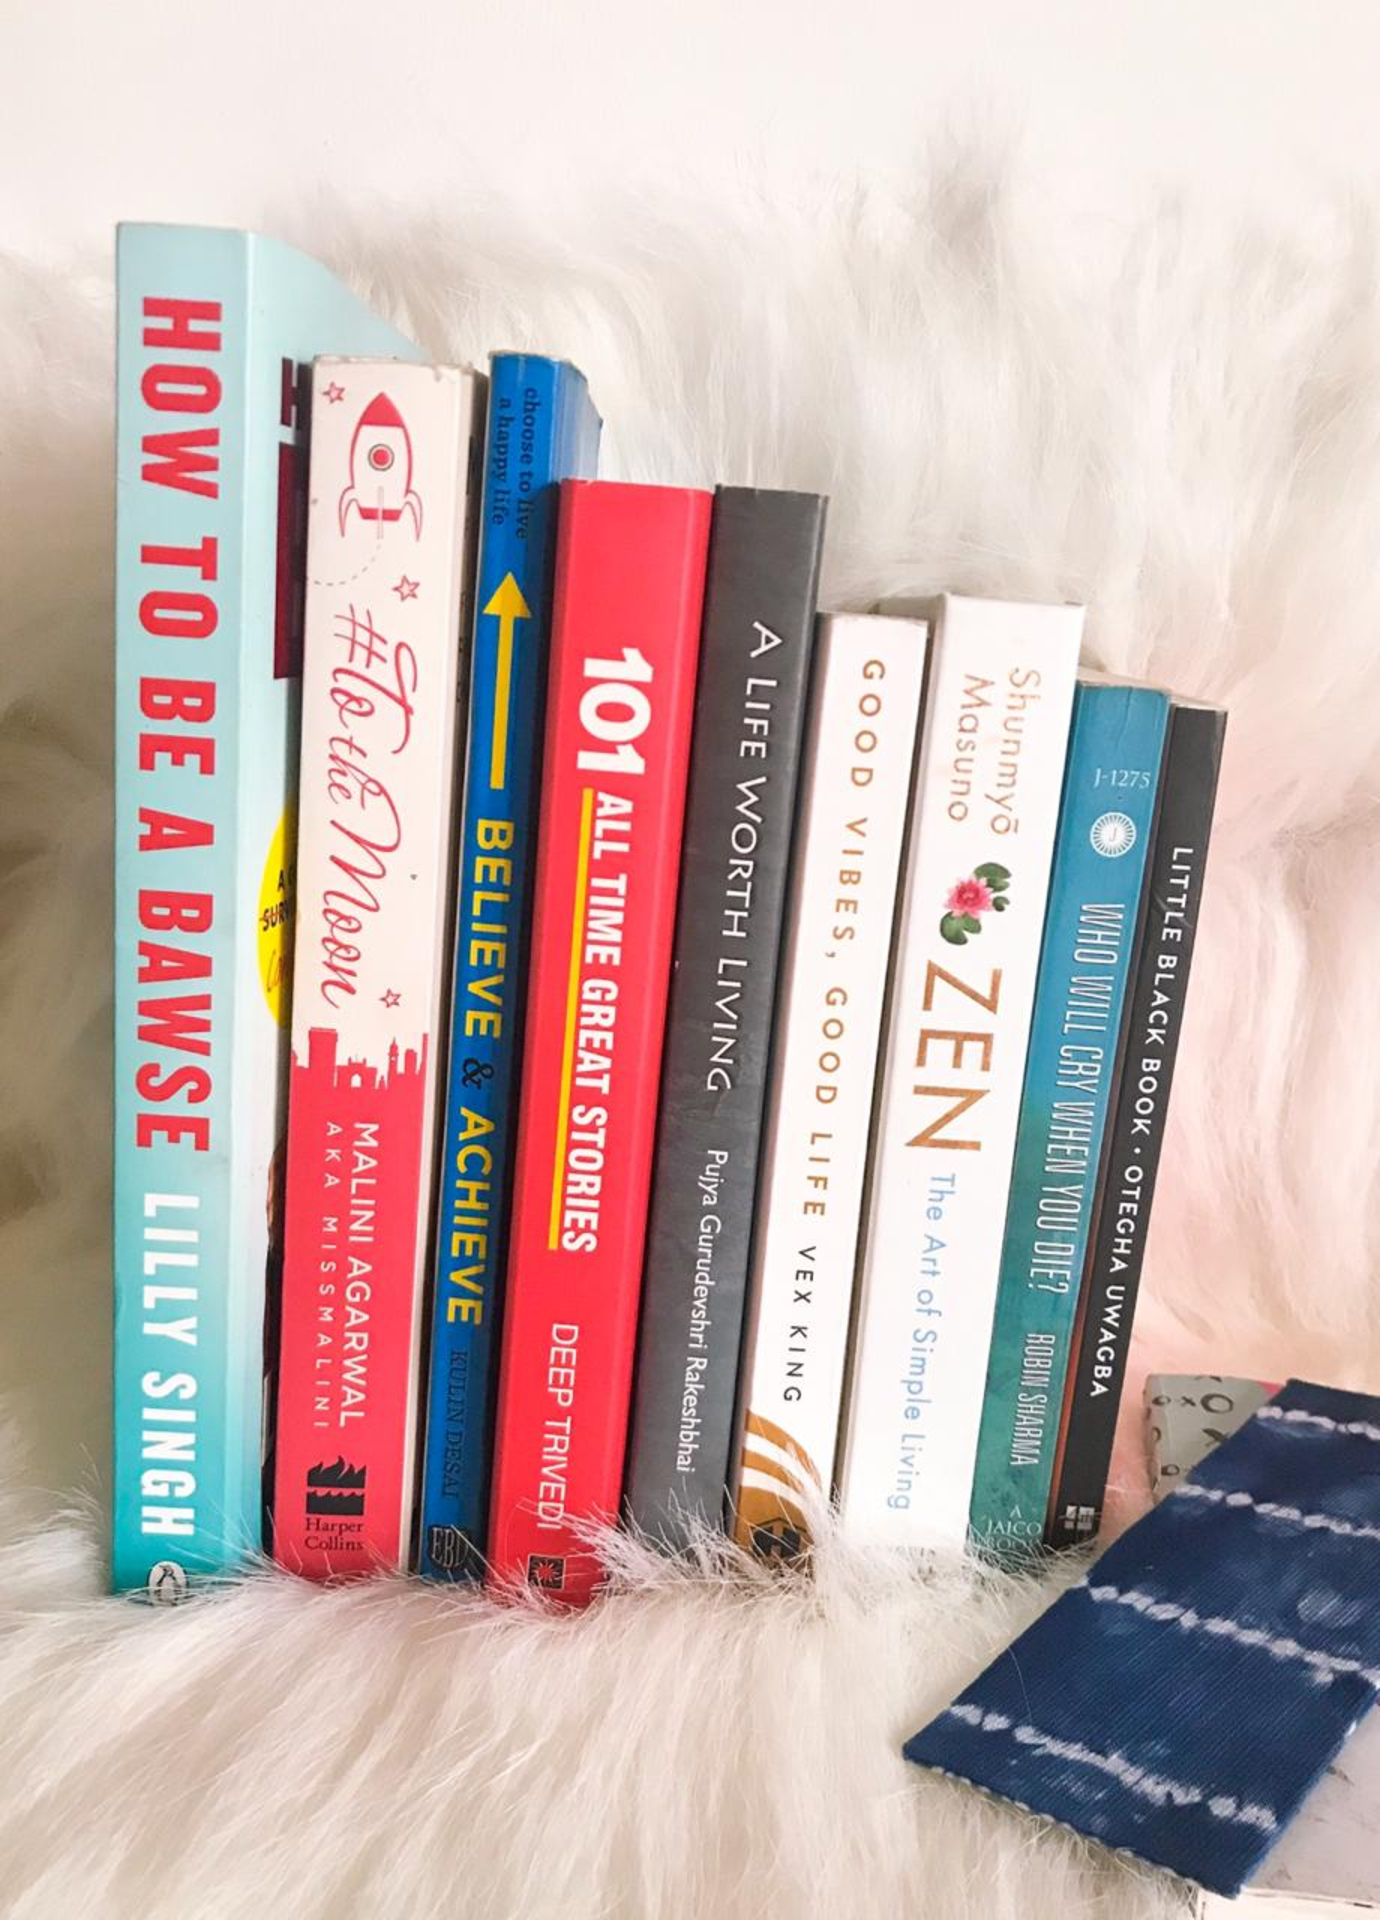 10 Inspirational Books on my bookshelf image